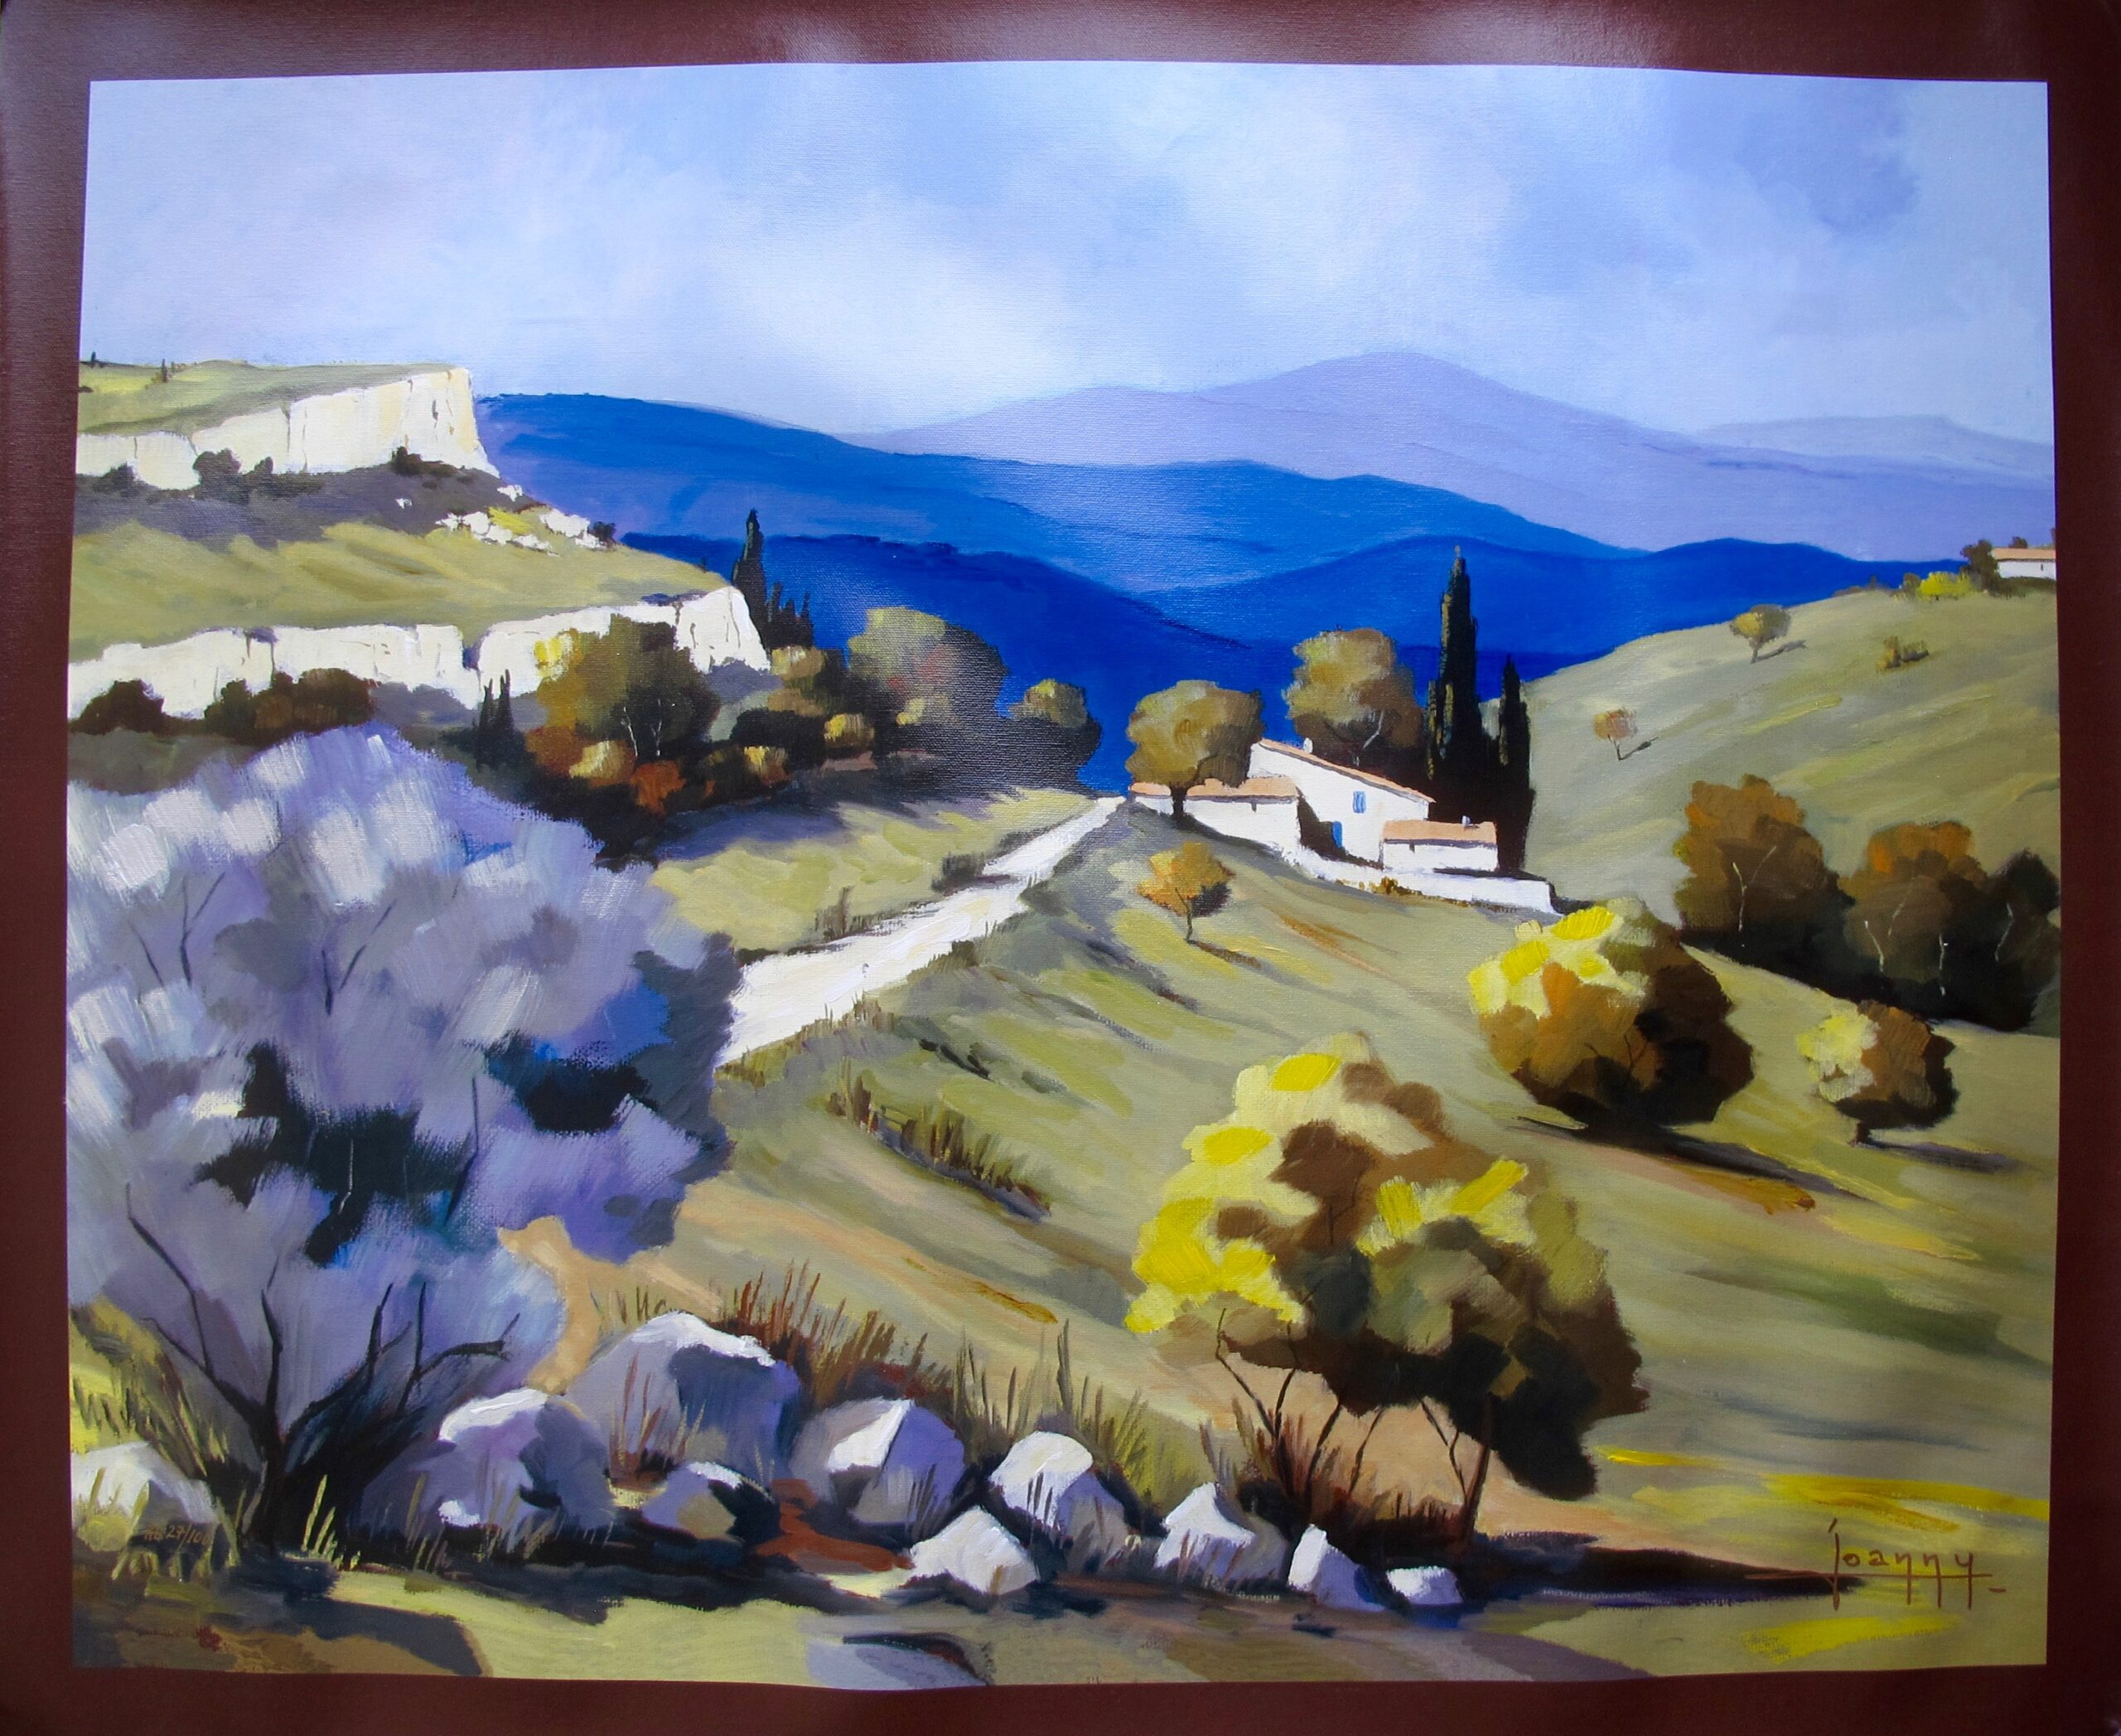 Joanny ORCHARD OF VALLON Hand Signed Limited Edition Giclee